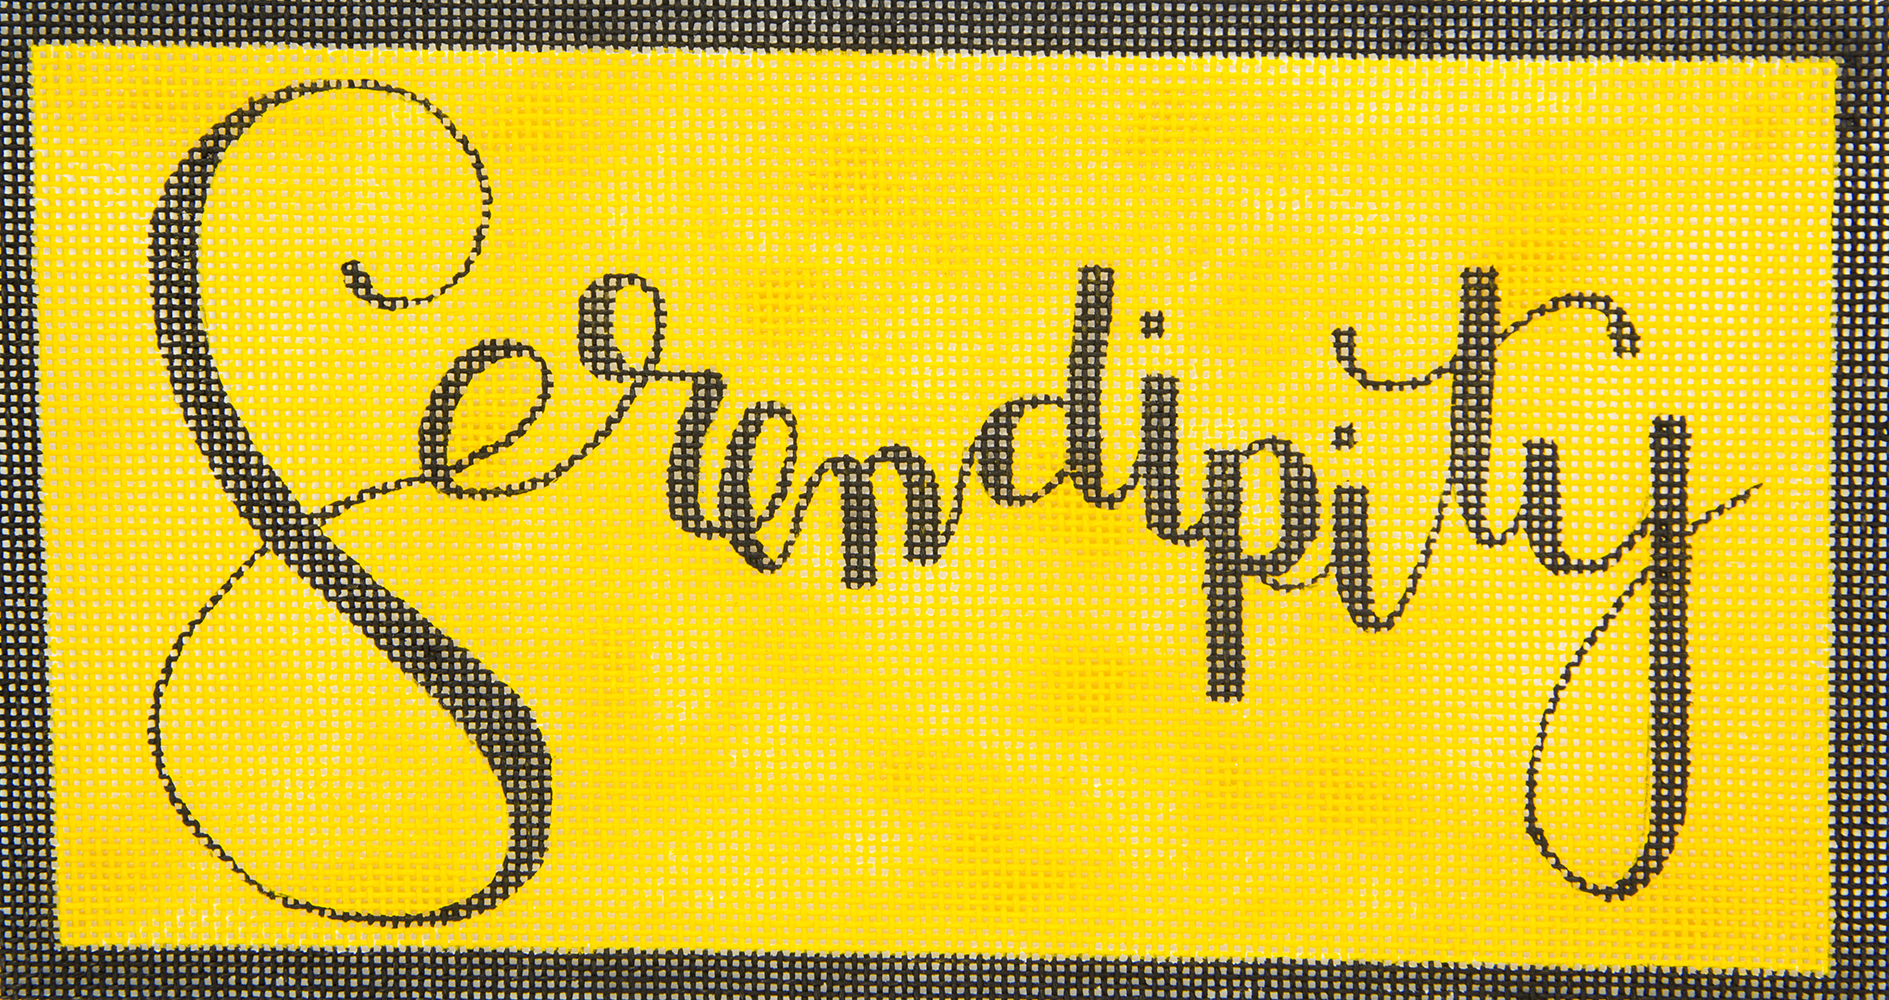 Serendipity on Yellow Oasis Needlepoint